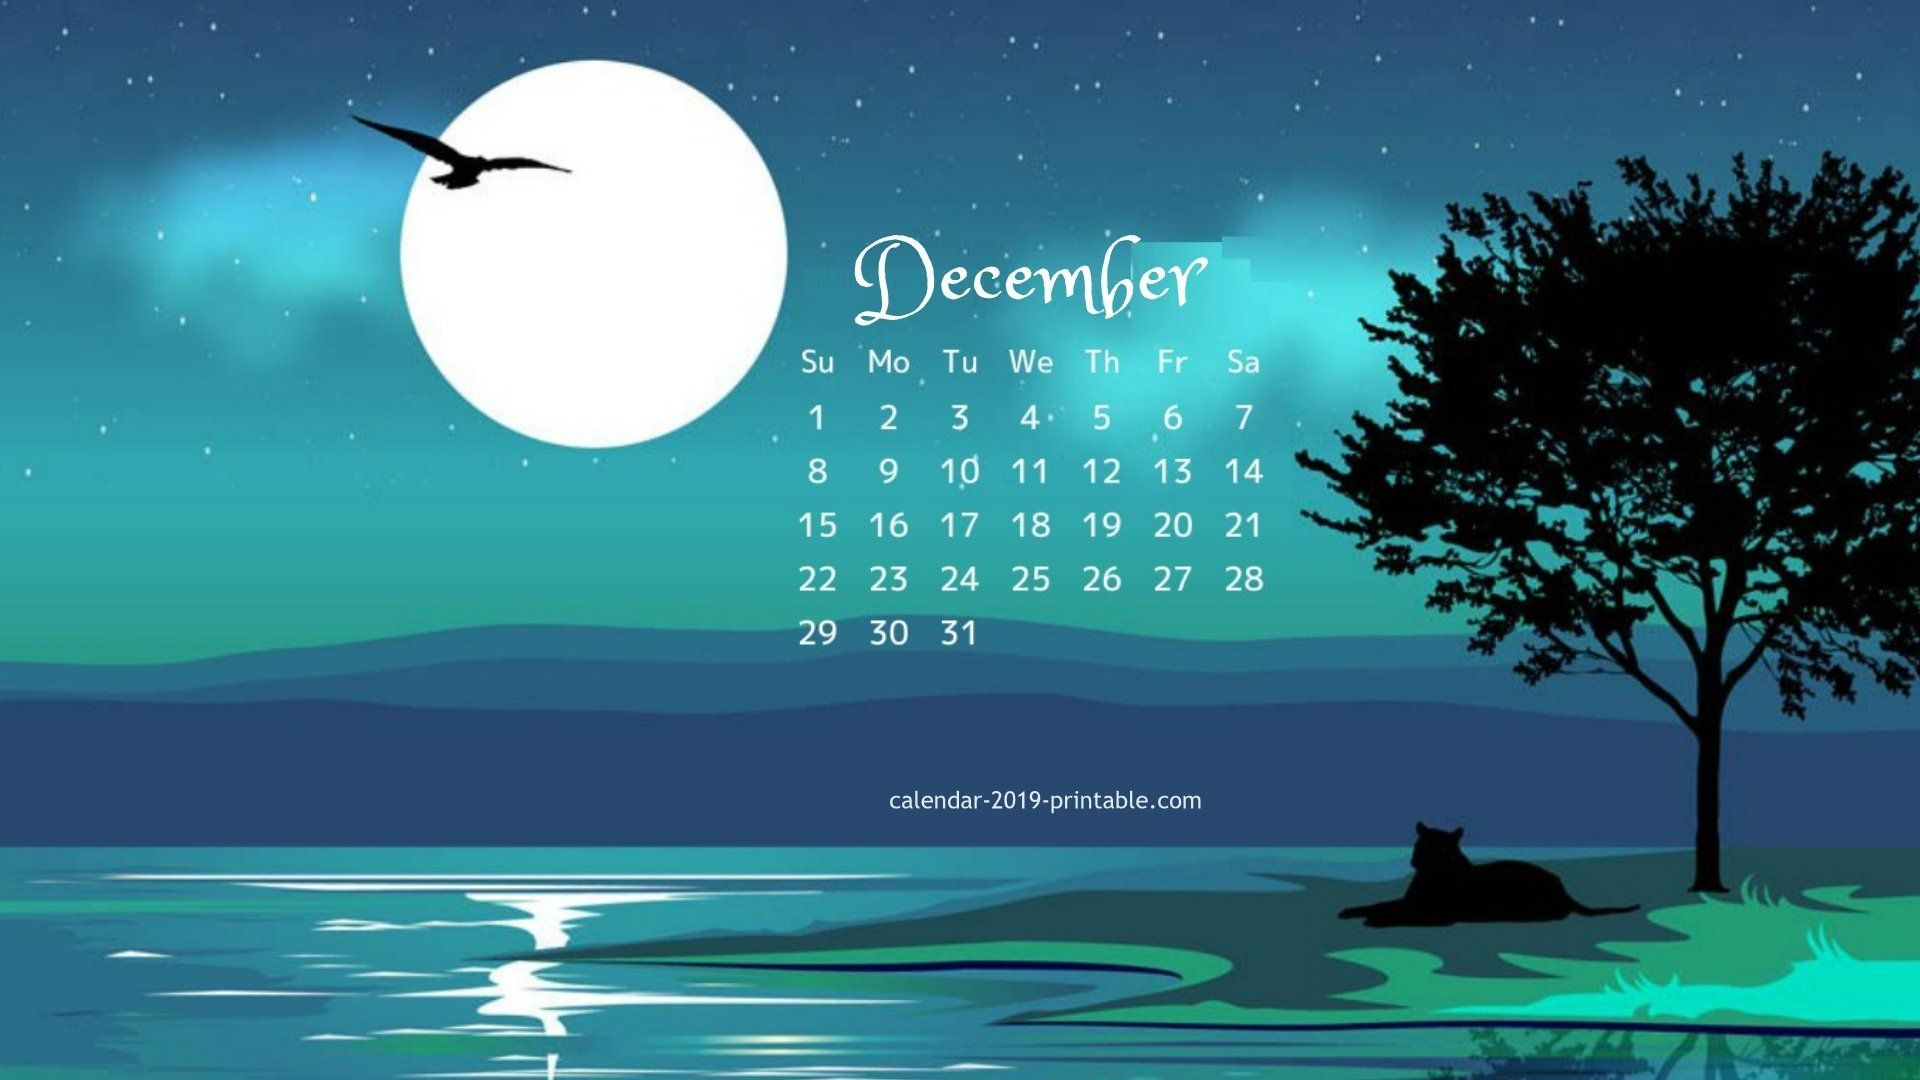 December 2019 Calendar Wallpaper Desktop december 2019 calendar wallpaper | 2019 Calendars in 2019